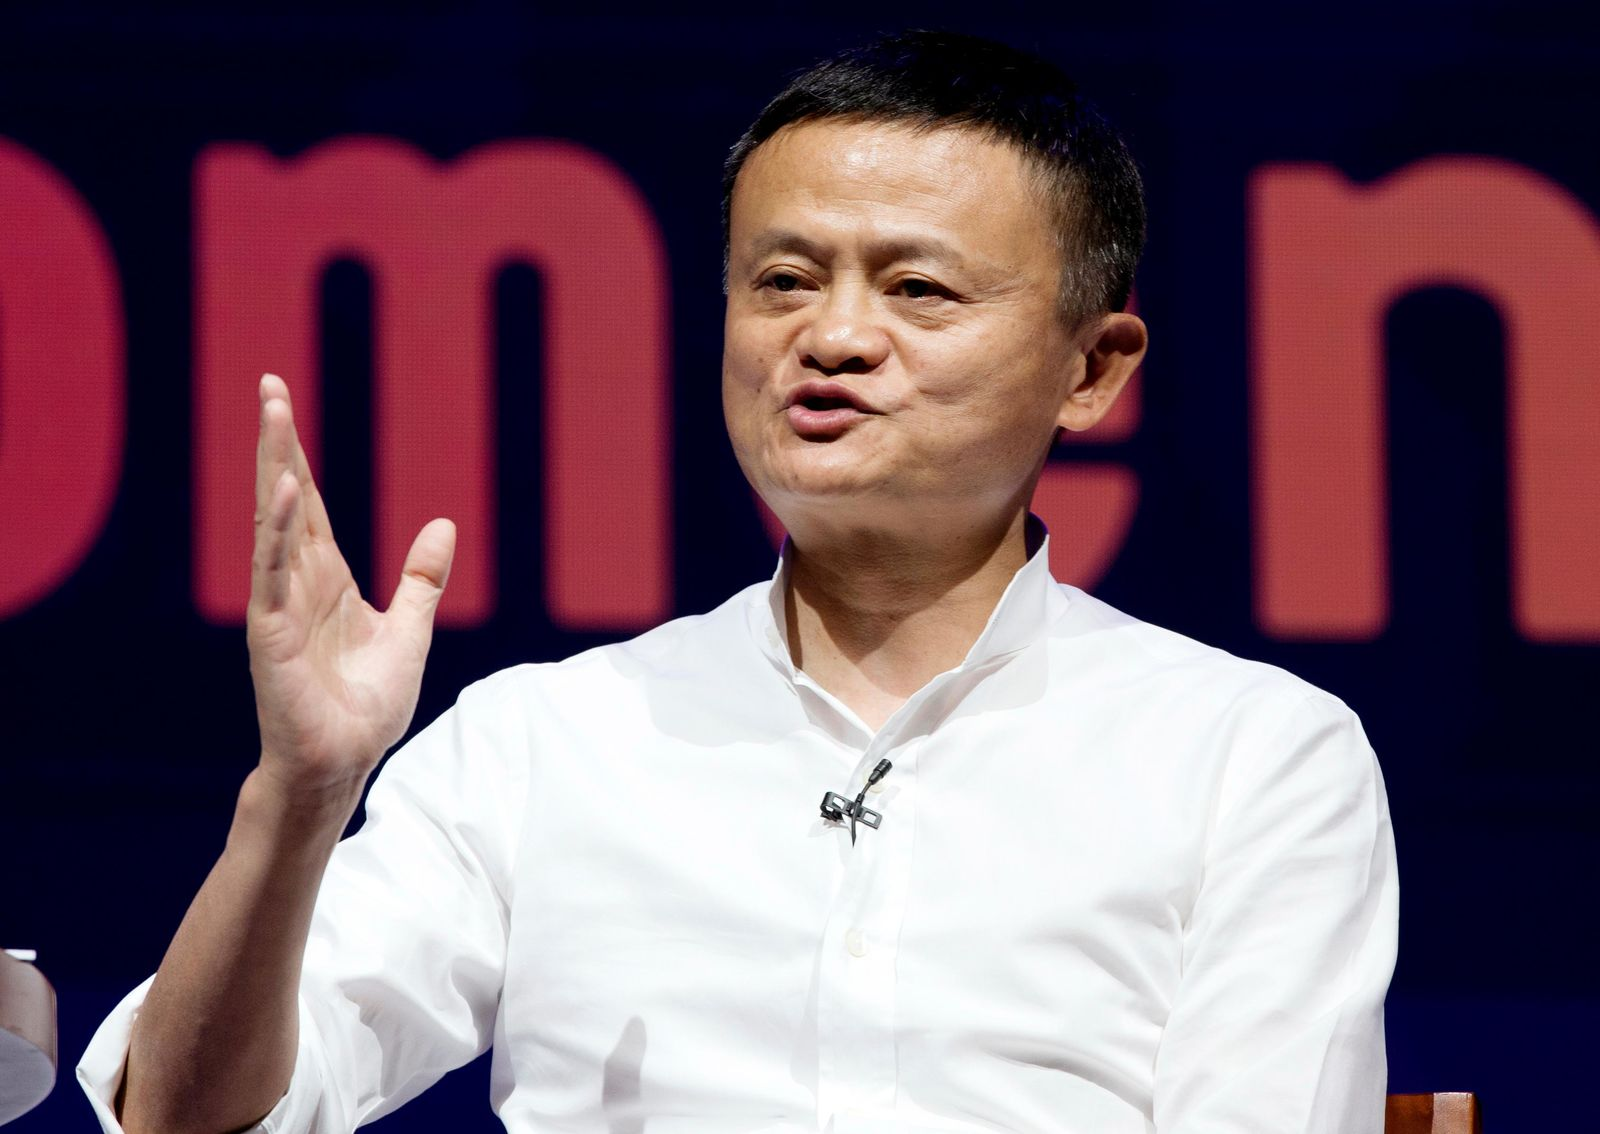 FILE - In this Oct. 12, 2018, file photo, Chairman of Alibaba Group Jack Ma speaks during a seminar in Bali, Indonesia.. (AP Photo/Firdia Lisnawati, File)